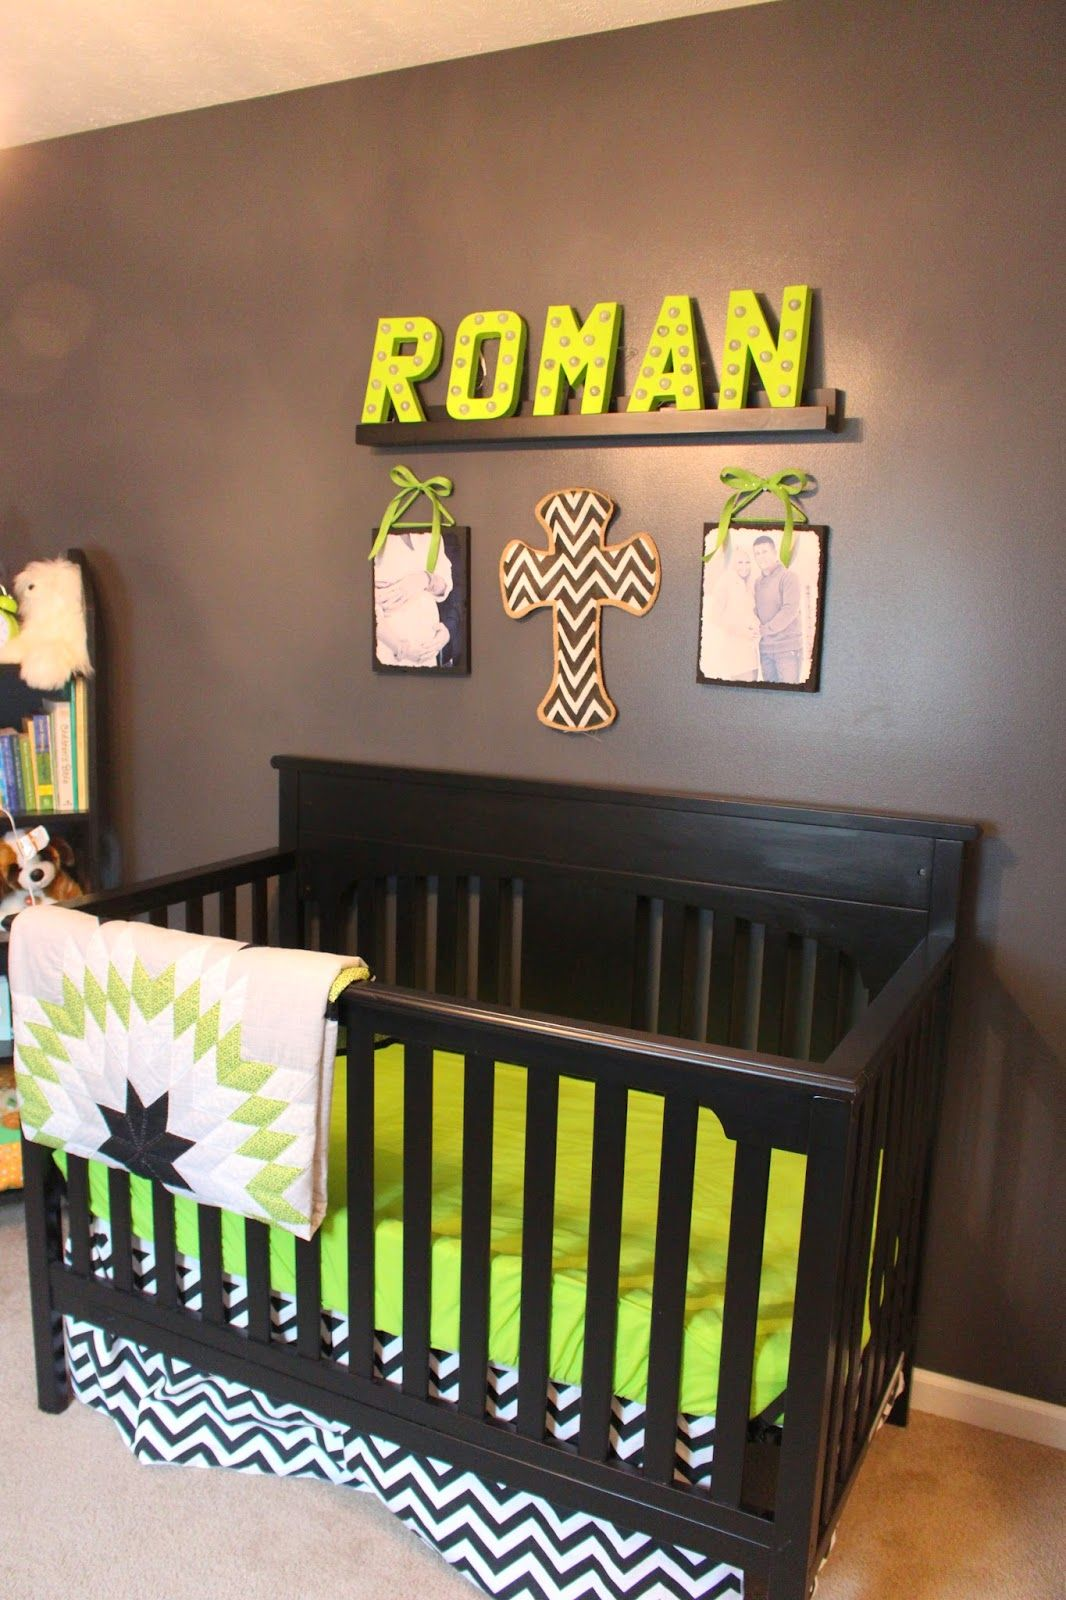 Light Bulb For Baby Room Name Marquee For A Little Boys Room Or Nursery Light Up